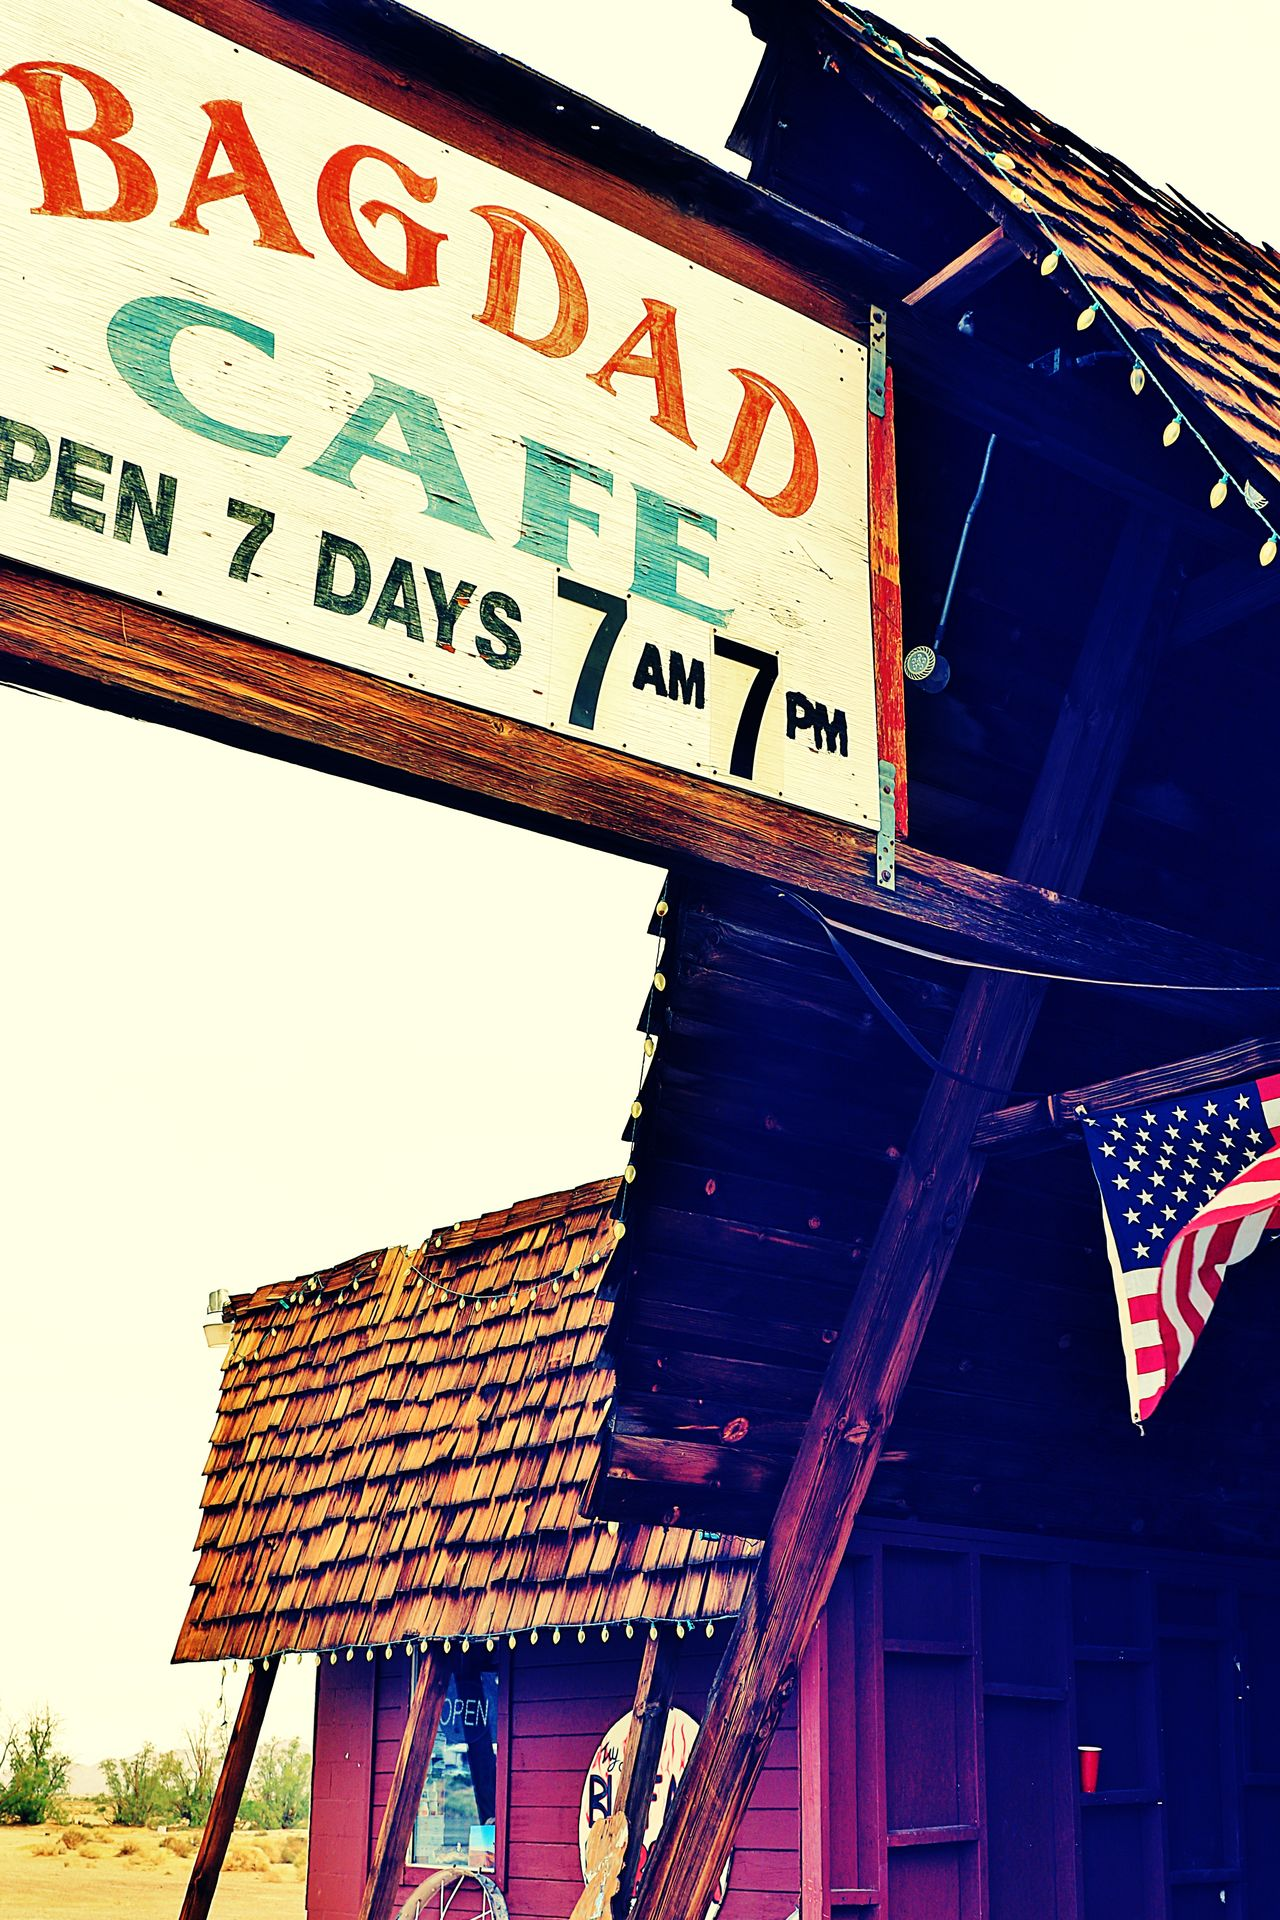 Bagdad Cafe at Mojave Desert,CA American Bagdad Cafe California Famous Place Information Jermany Mov MojaveDesert Motel MOVIE Old Old Buildings Old House Photostock Stockphoto Symbol Traveling Trip USAtrip